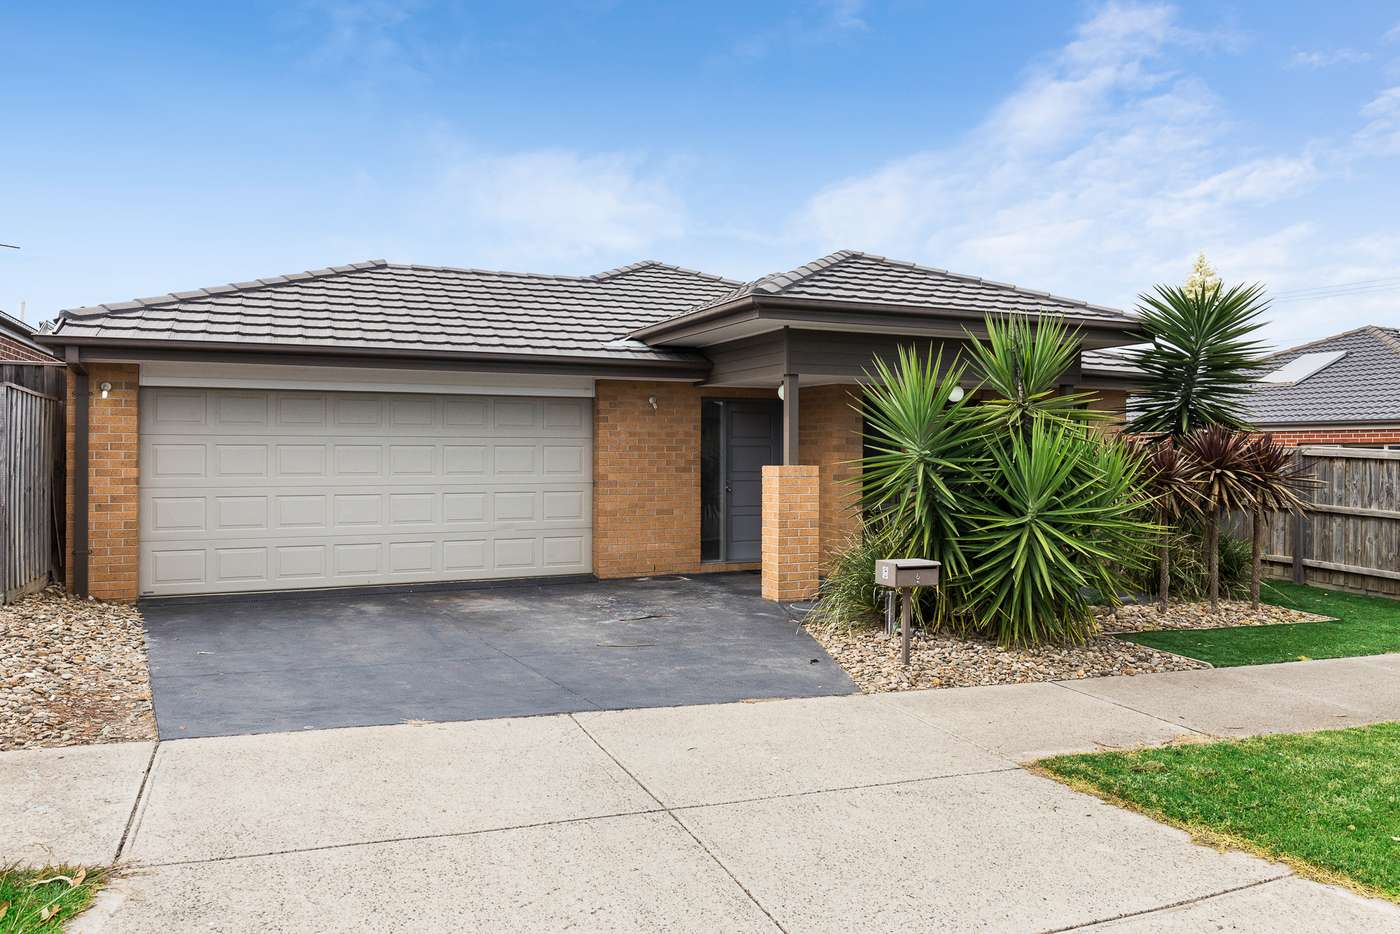 Main view of Homely house listing, 6 Piccadily Court, Doreen VIC 3754